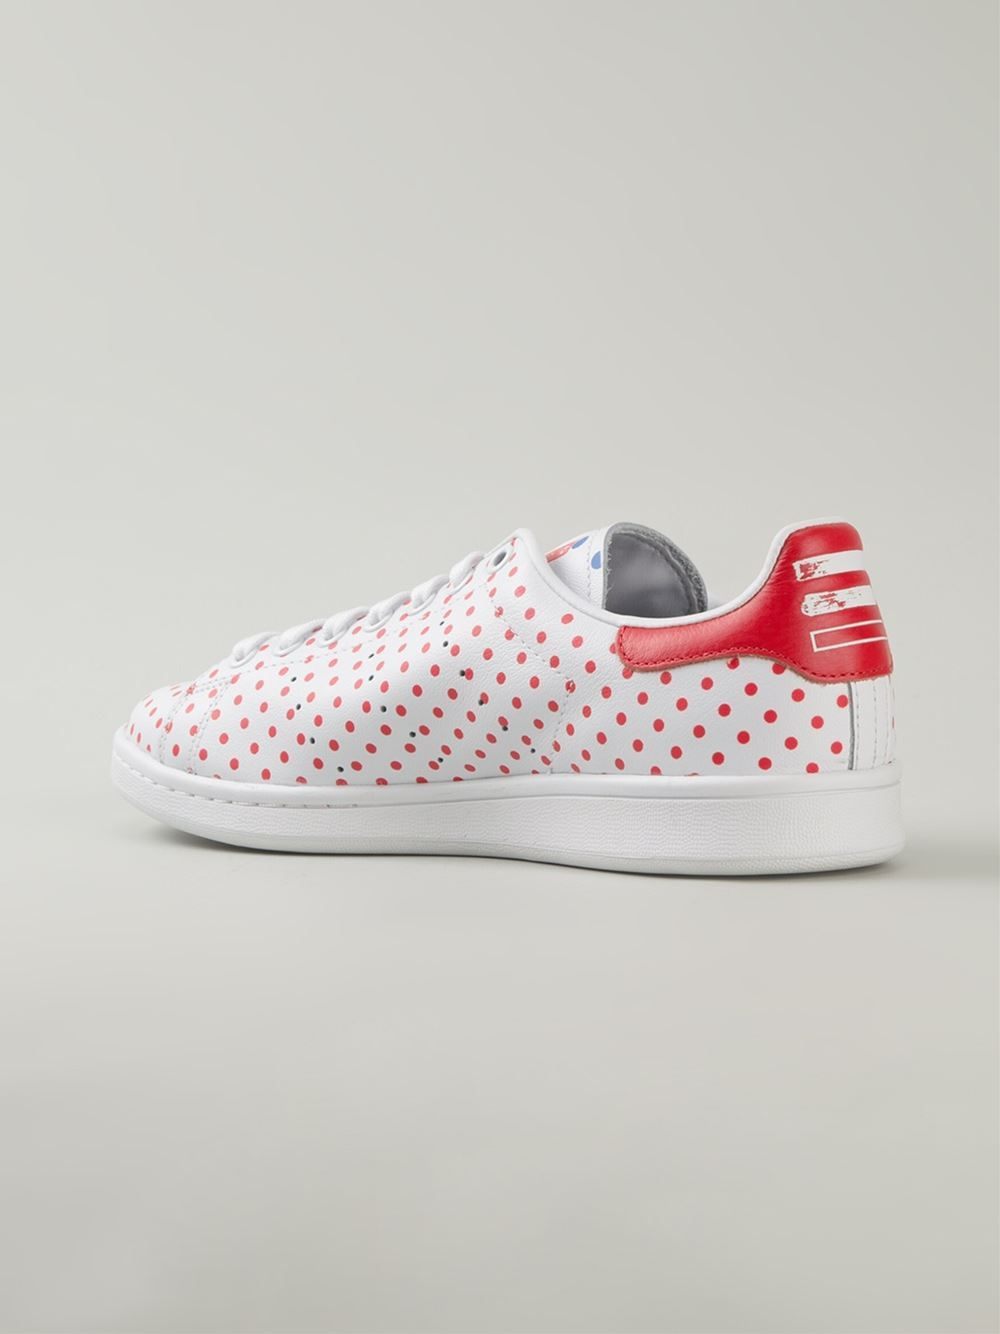 fc22016c7fcce Adidas Originals X Pharrell Williams  stan Smith  Polka Dot Sneakers -  Penelope - Farfetch